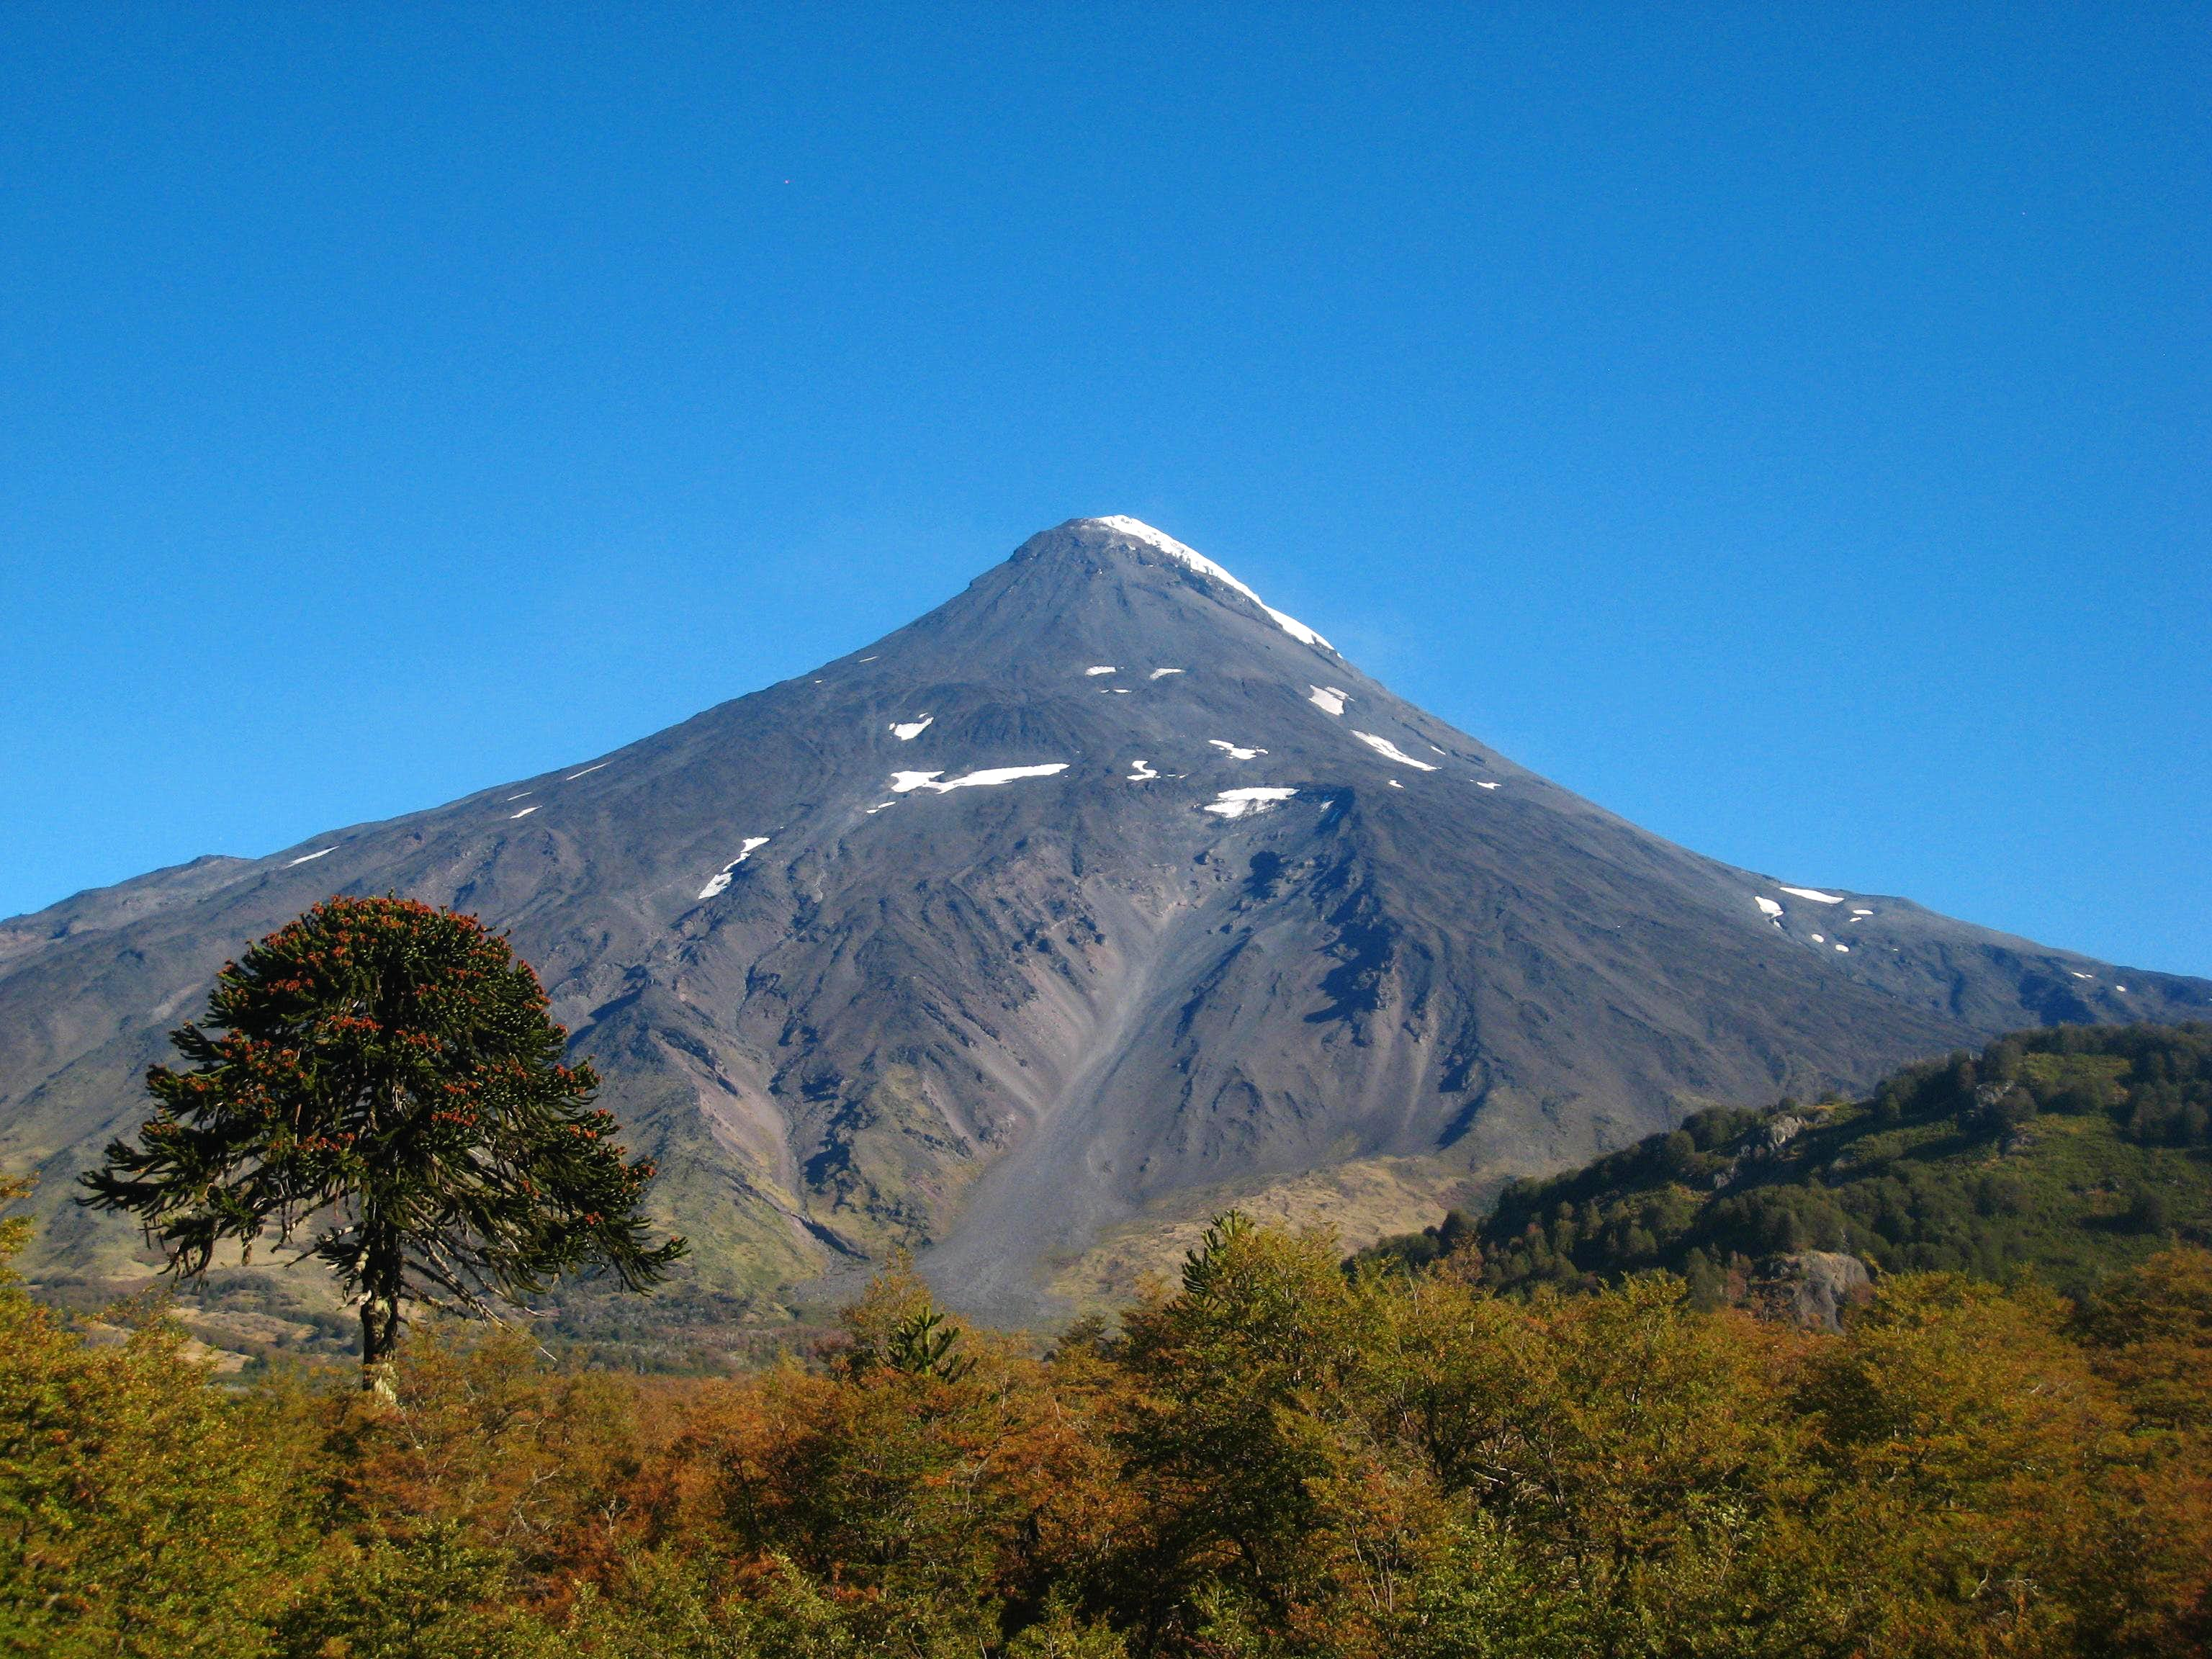 Chilean Chronicles Volume 2 - Exploring Pucon and Success on Lanin Volcano